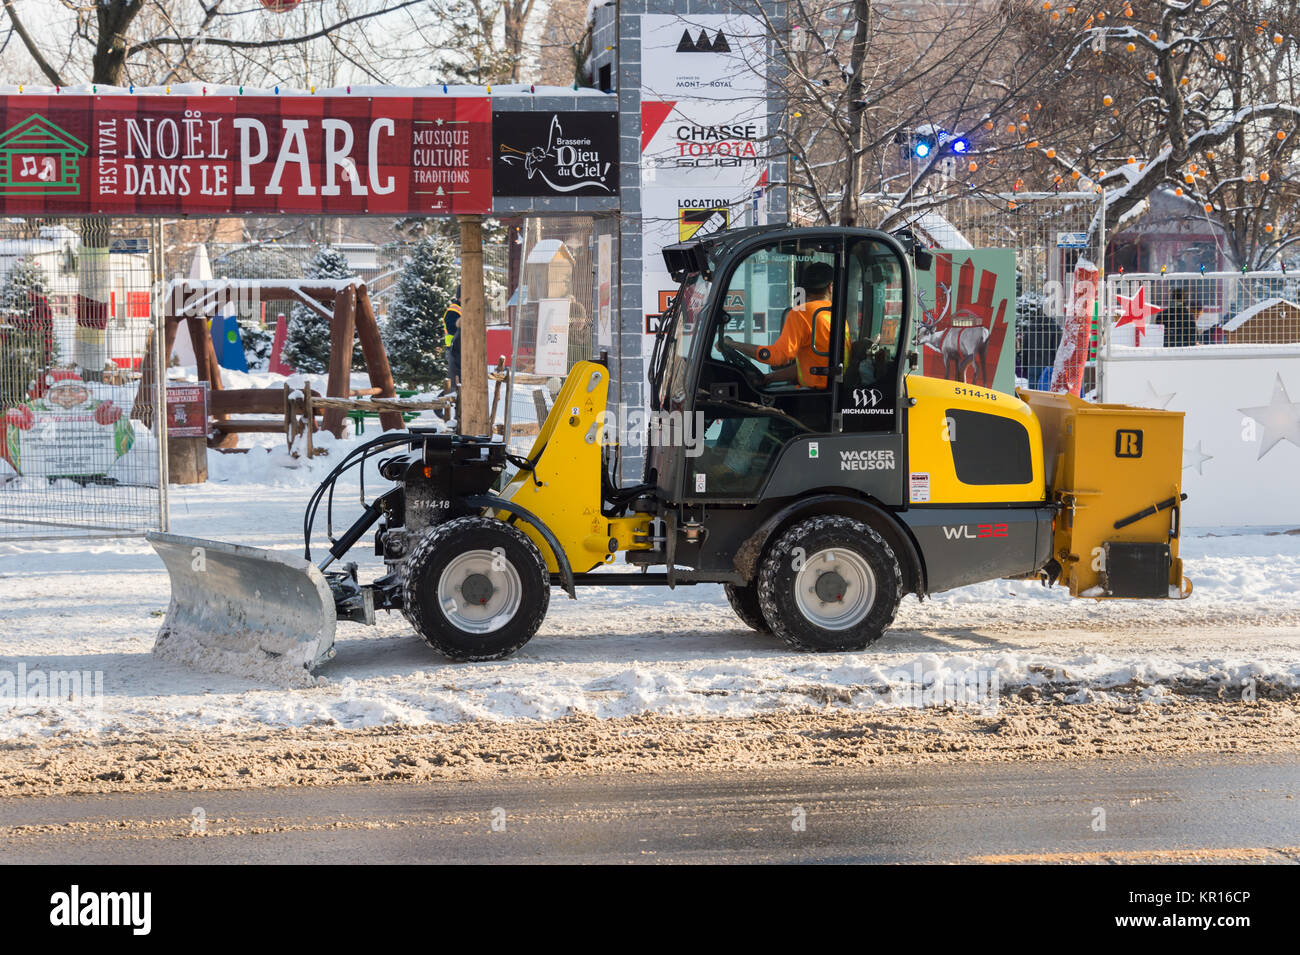 Canadian Snow Plow Snow Plow Canada Stock Photos And Snow Plow Canada Stock